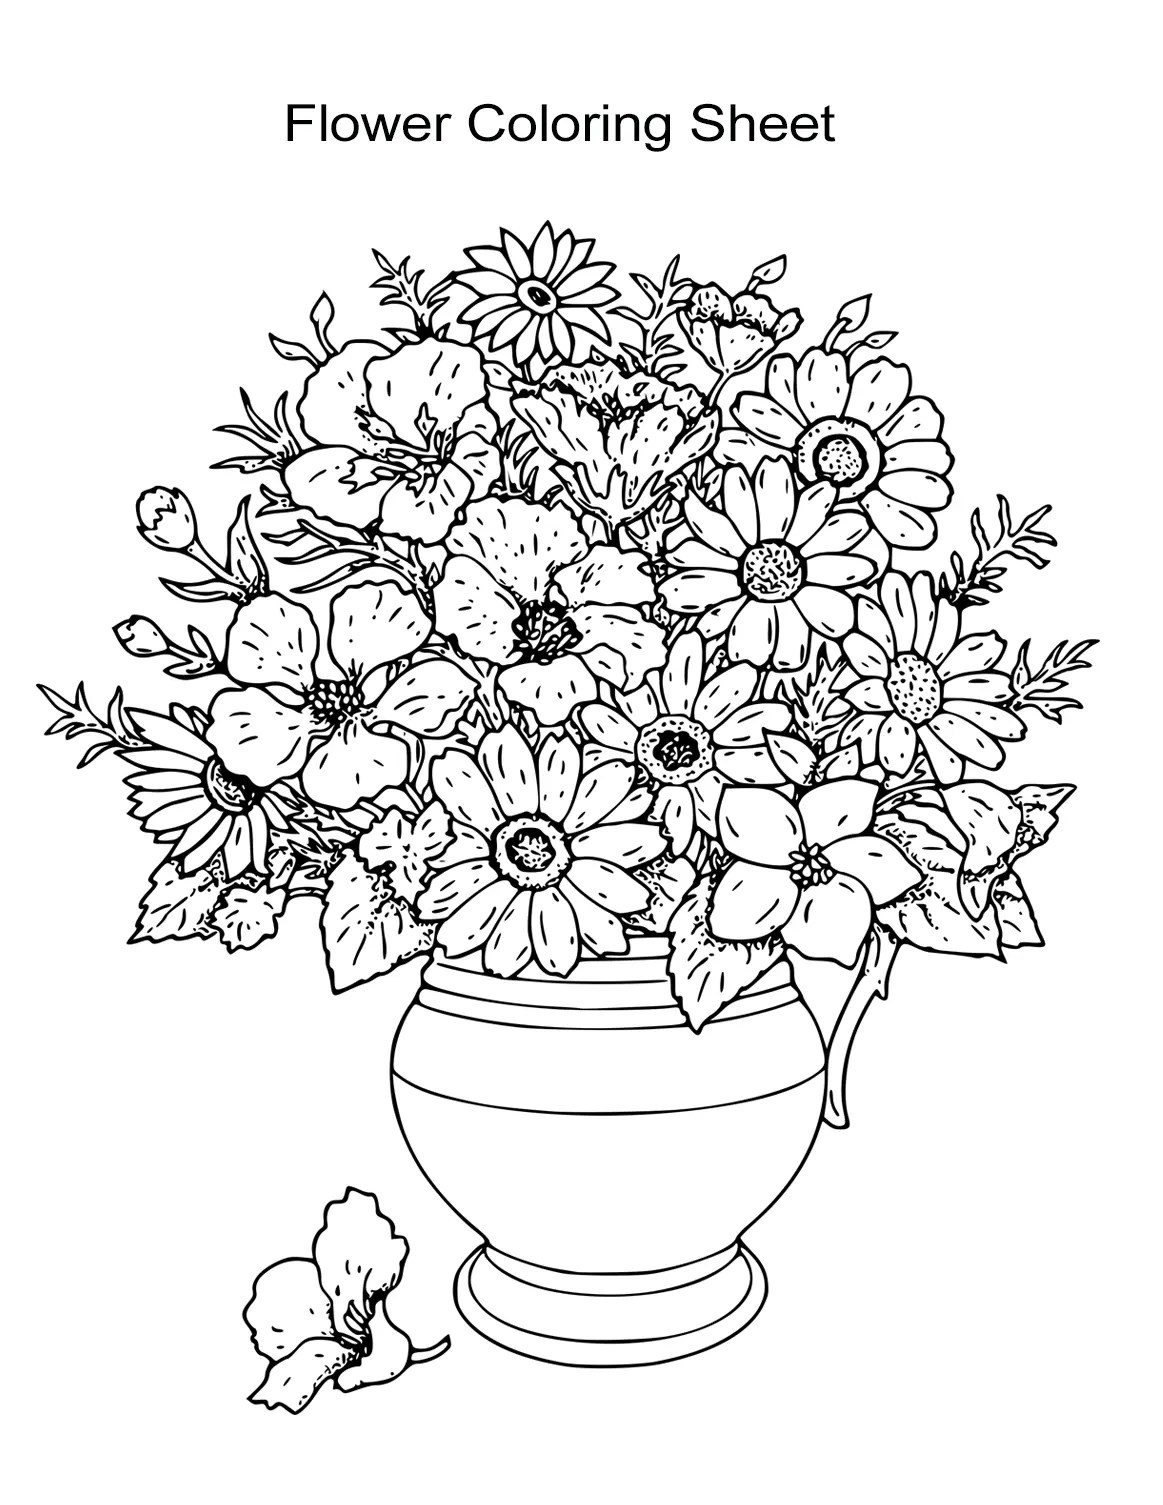 10 Flower Coloring Sheets For Girls And Boys